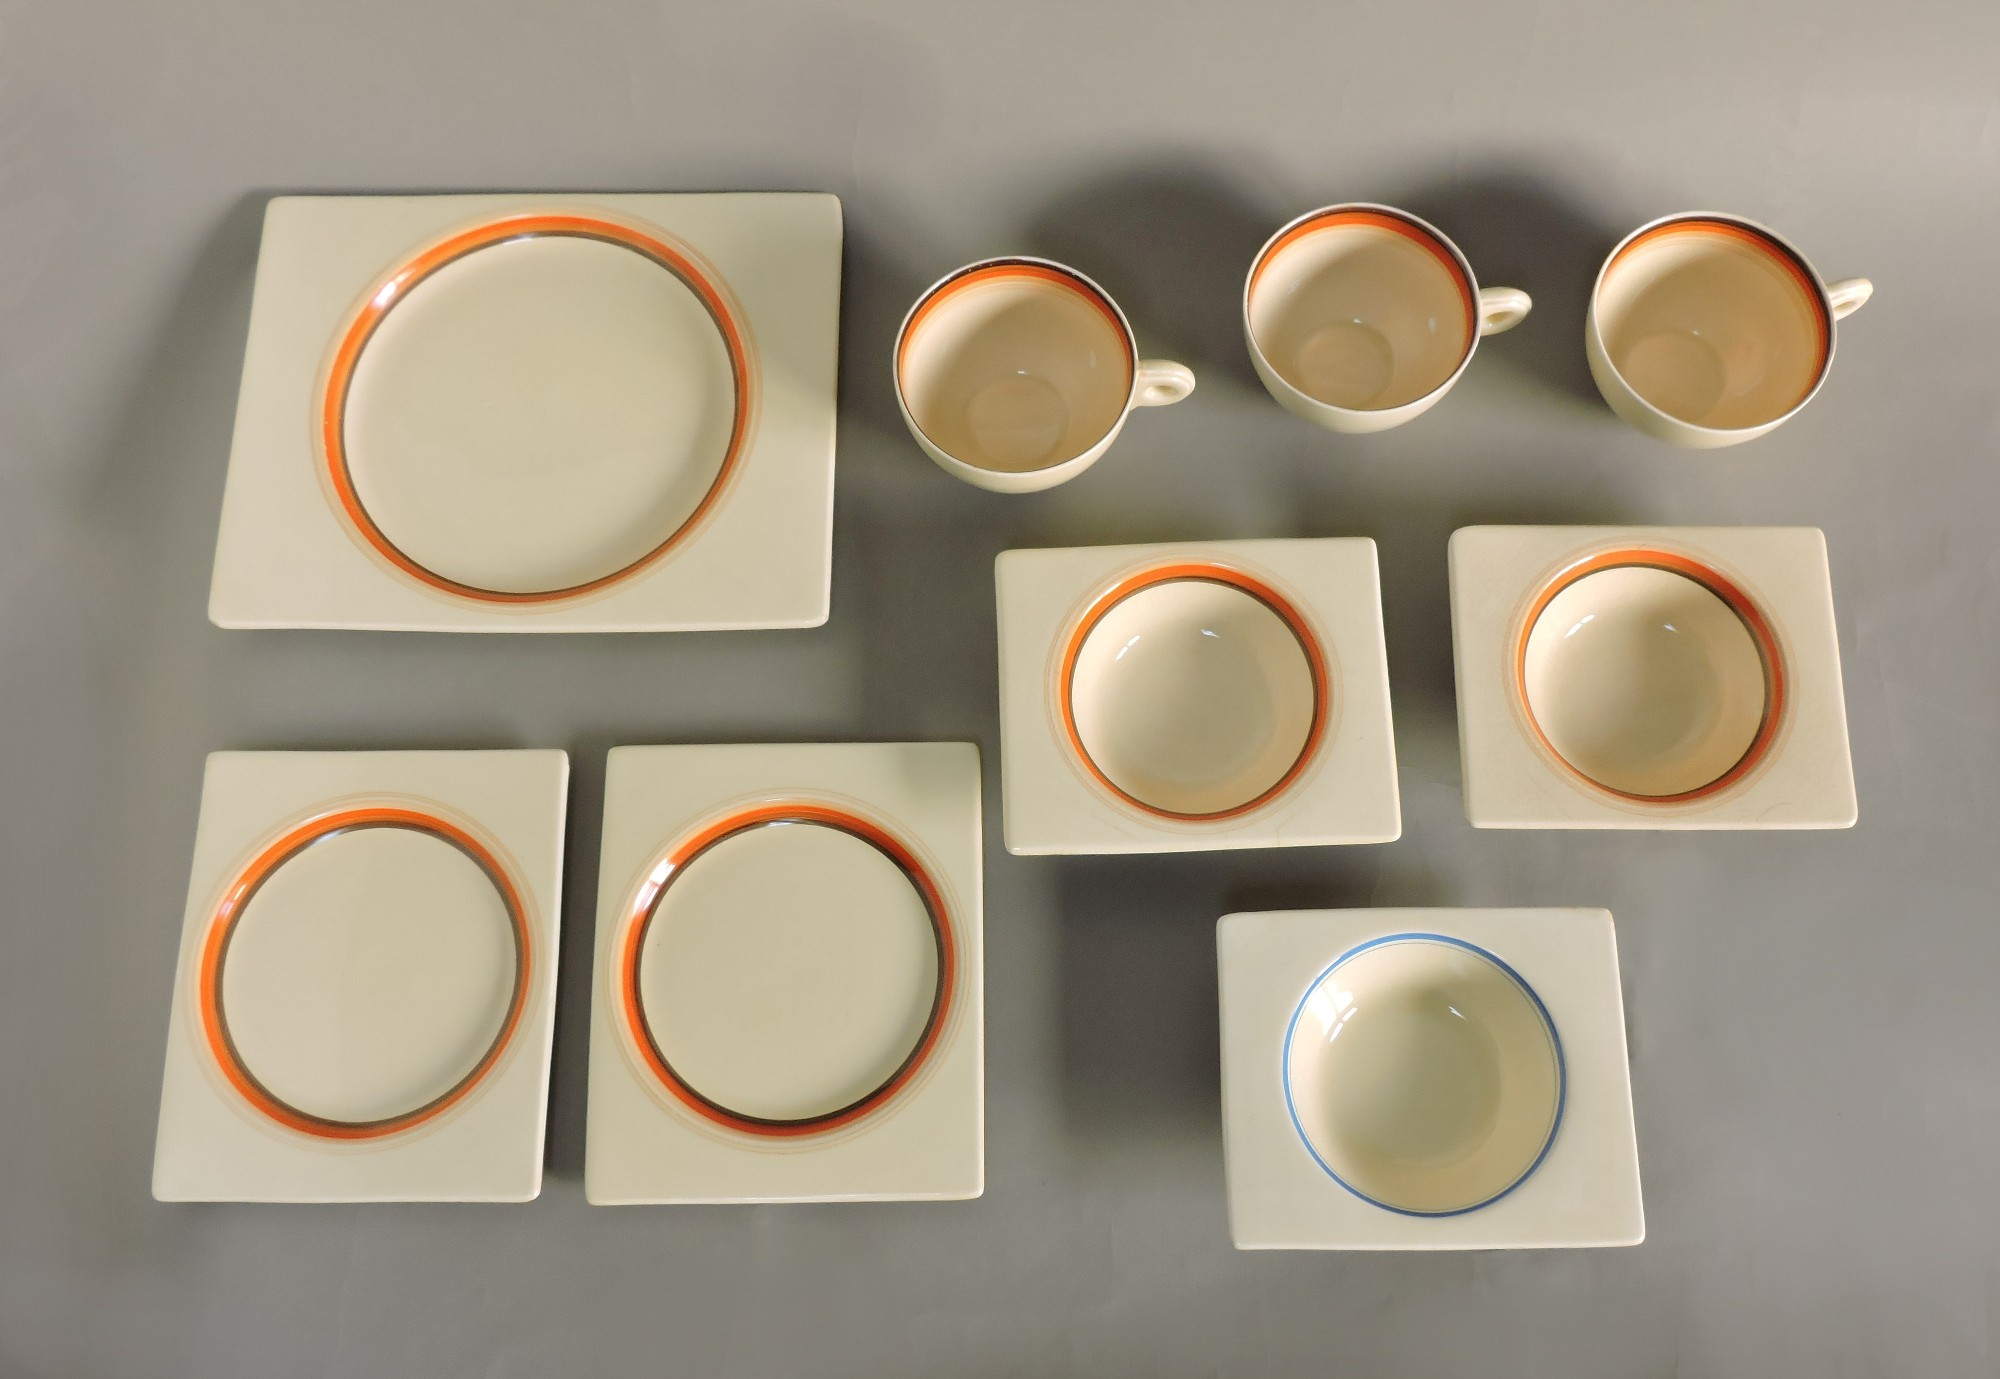 Beautiful and unique Art Deco Biarritz partial dinnerware set designed by Clarice Cliff and made in England in the 1930s by Royal Staffordshire. & Clarice Cliff Art Deco Biarritz partial dinnerware set of plates ...